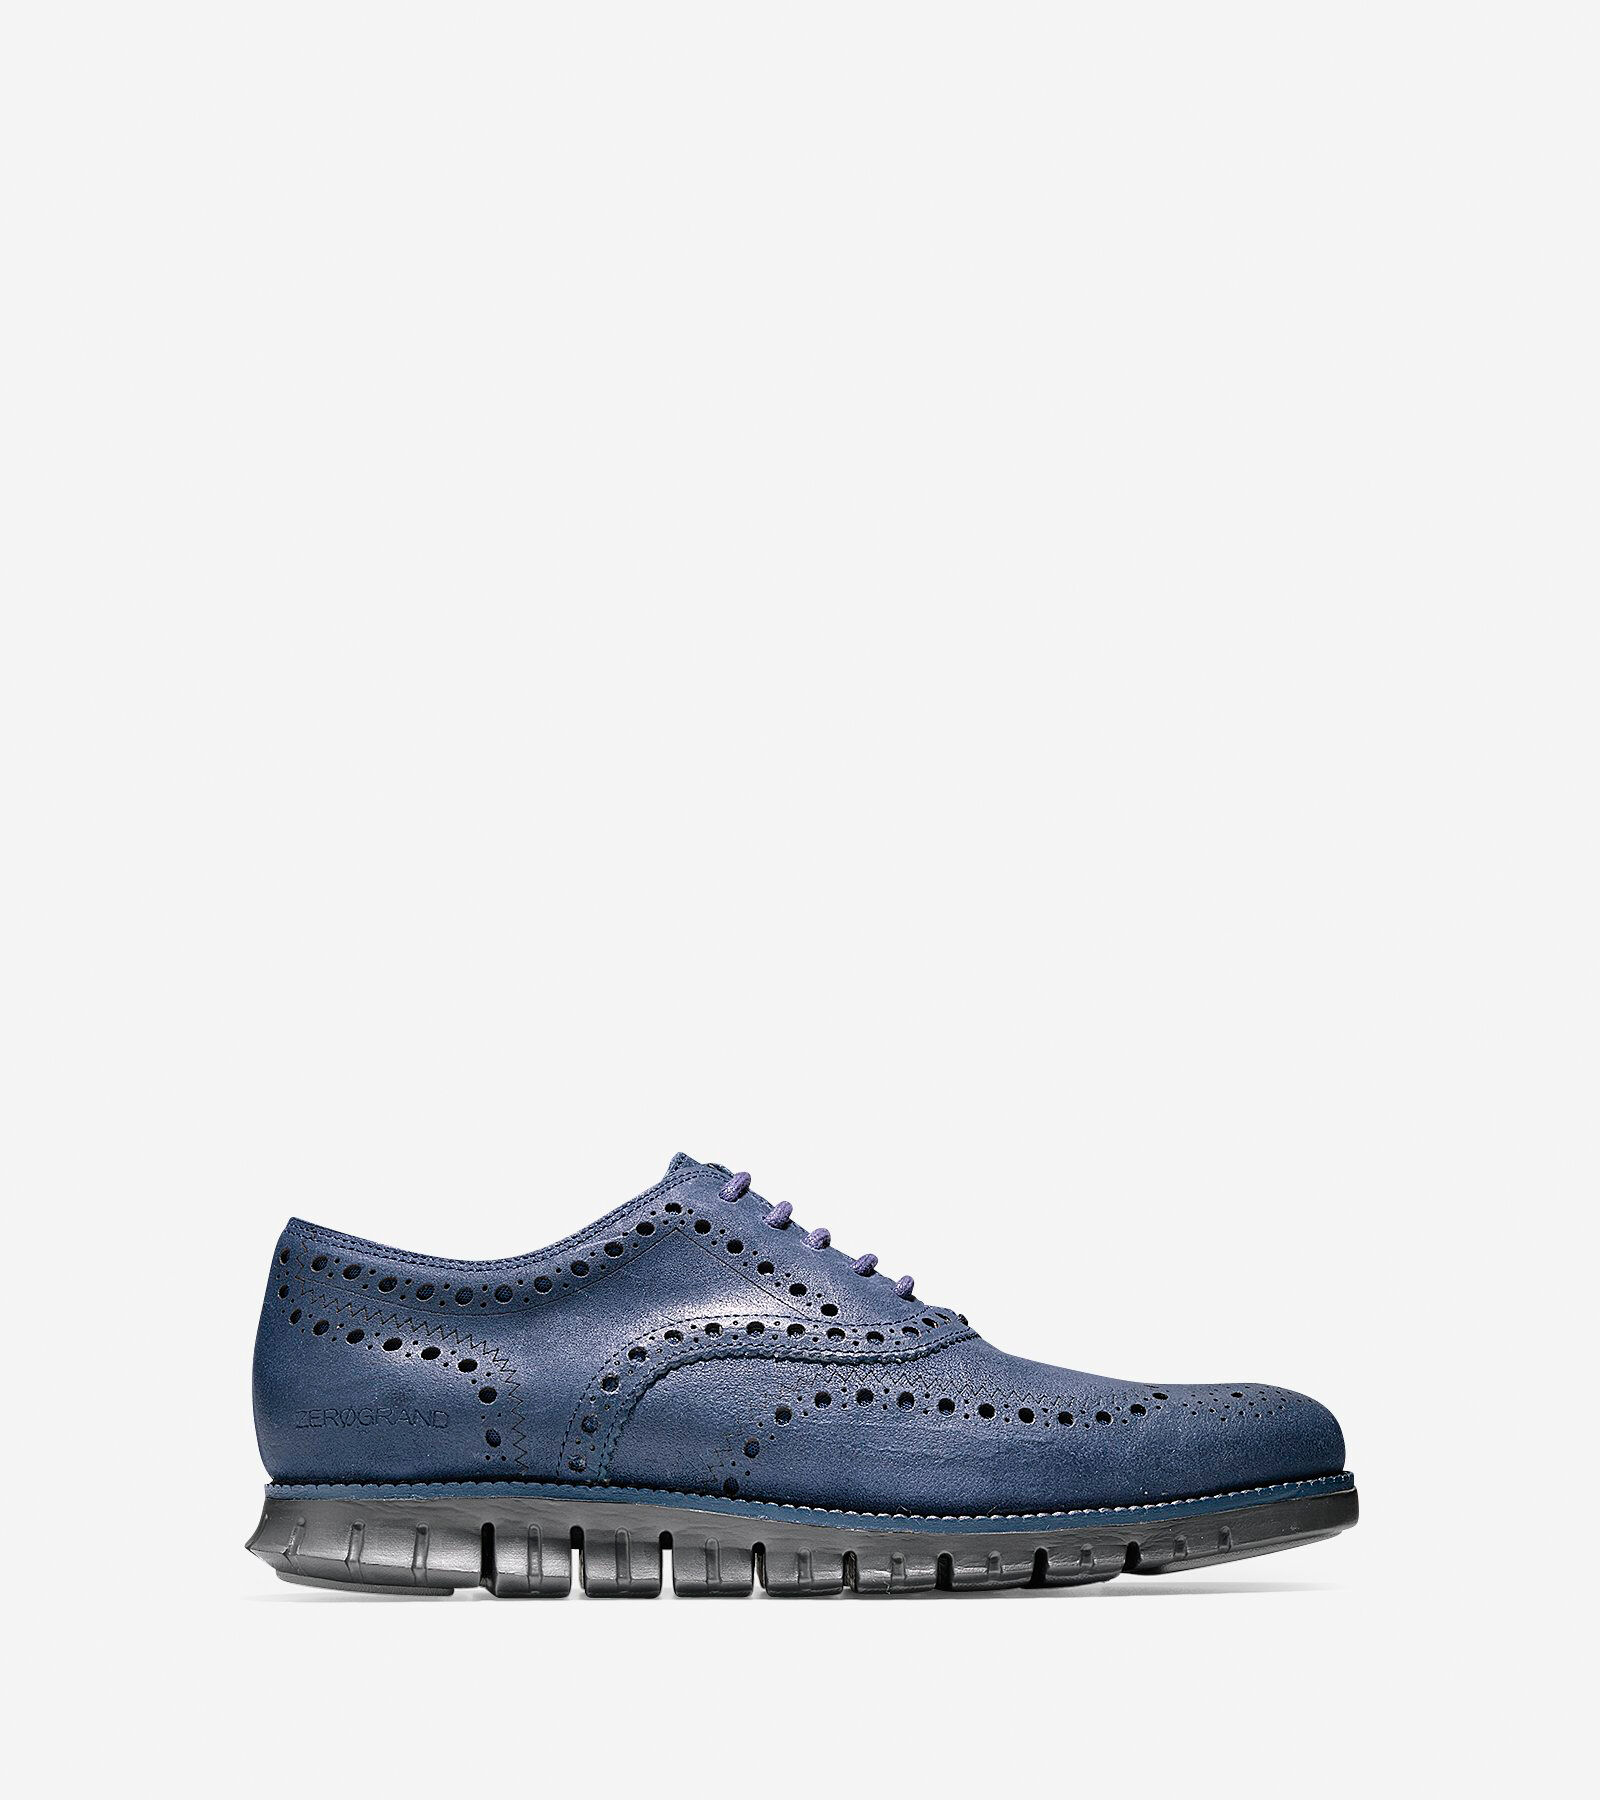 cole haan shoes cleaner near me hotels 715257